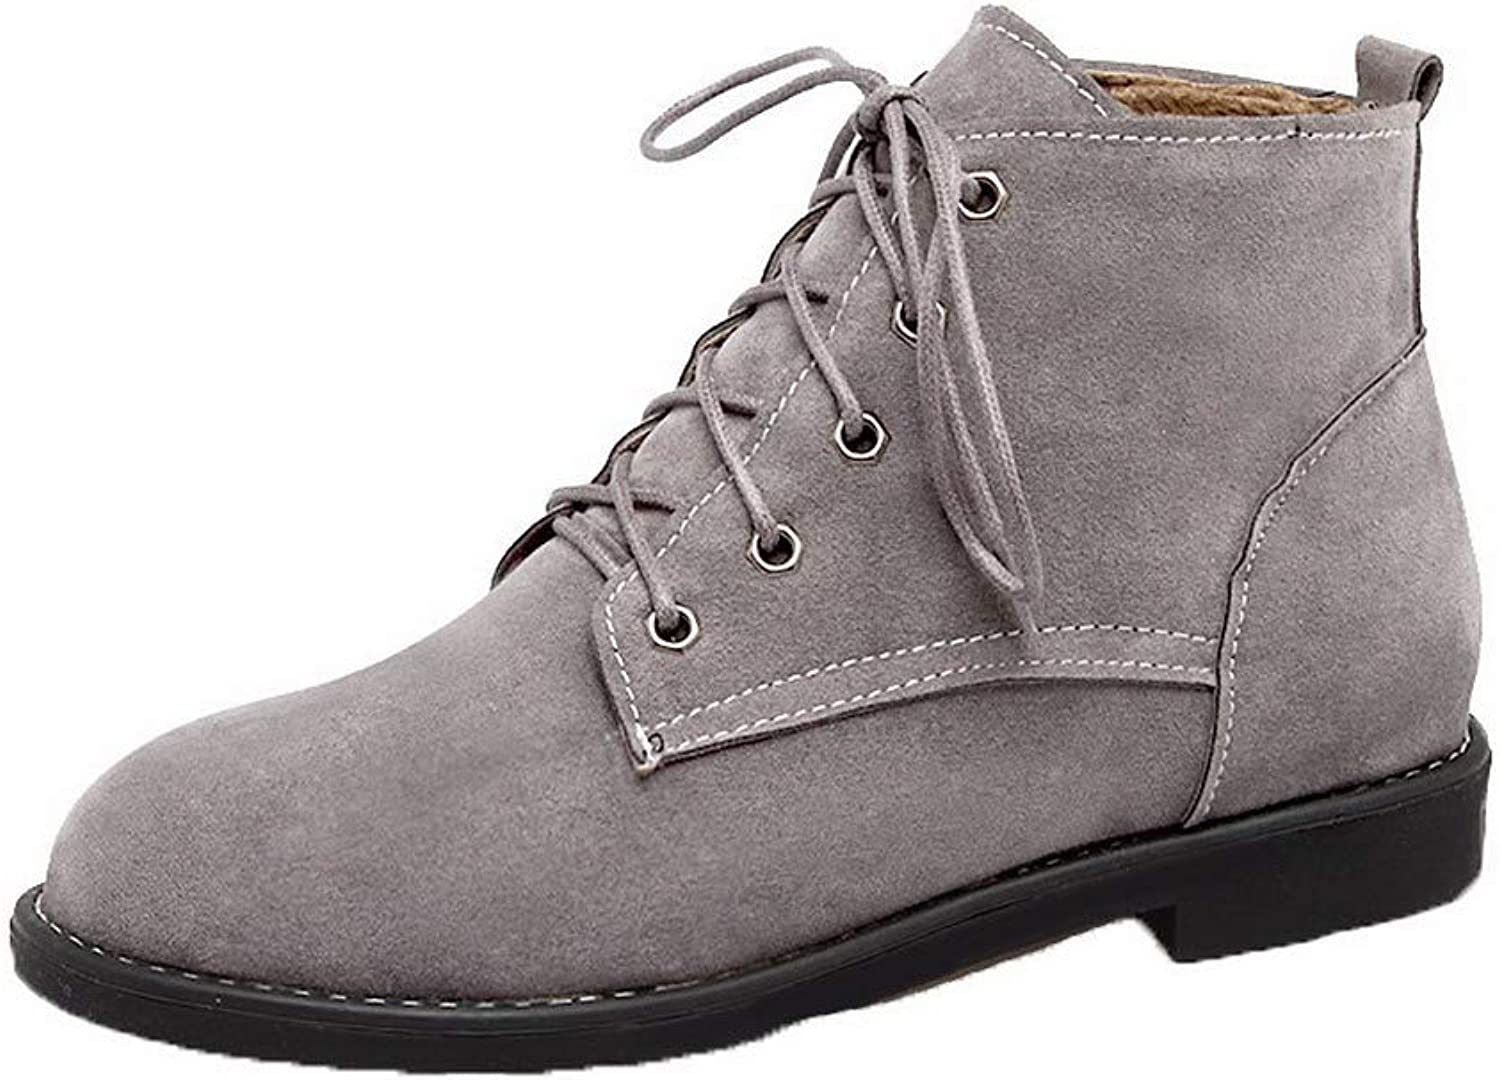 WeiPoot Women's Low-Heels Frosted Ankle-High Solid Lace-Up Boots, EGHXH120427